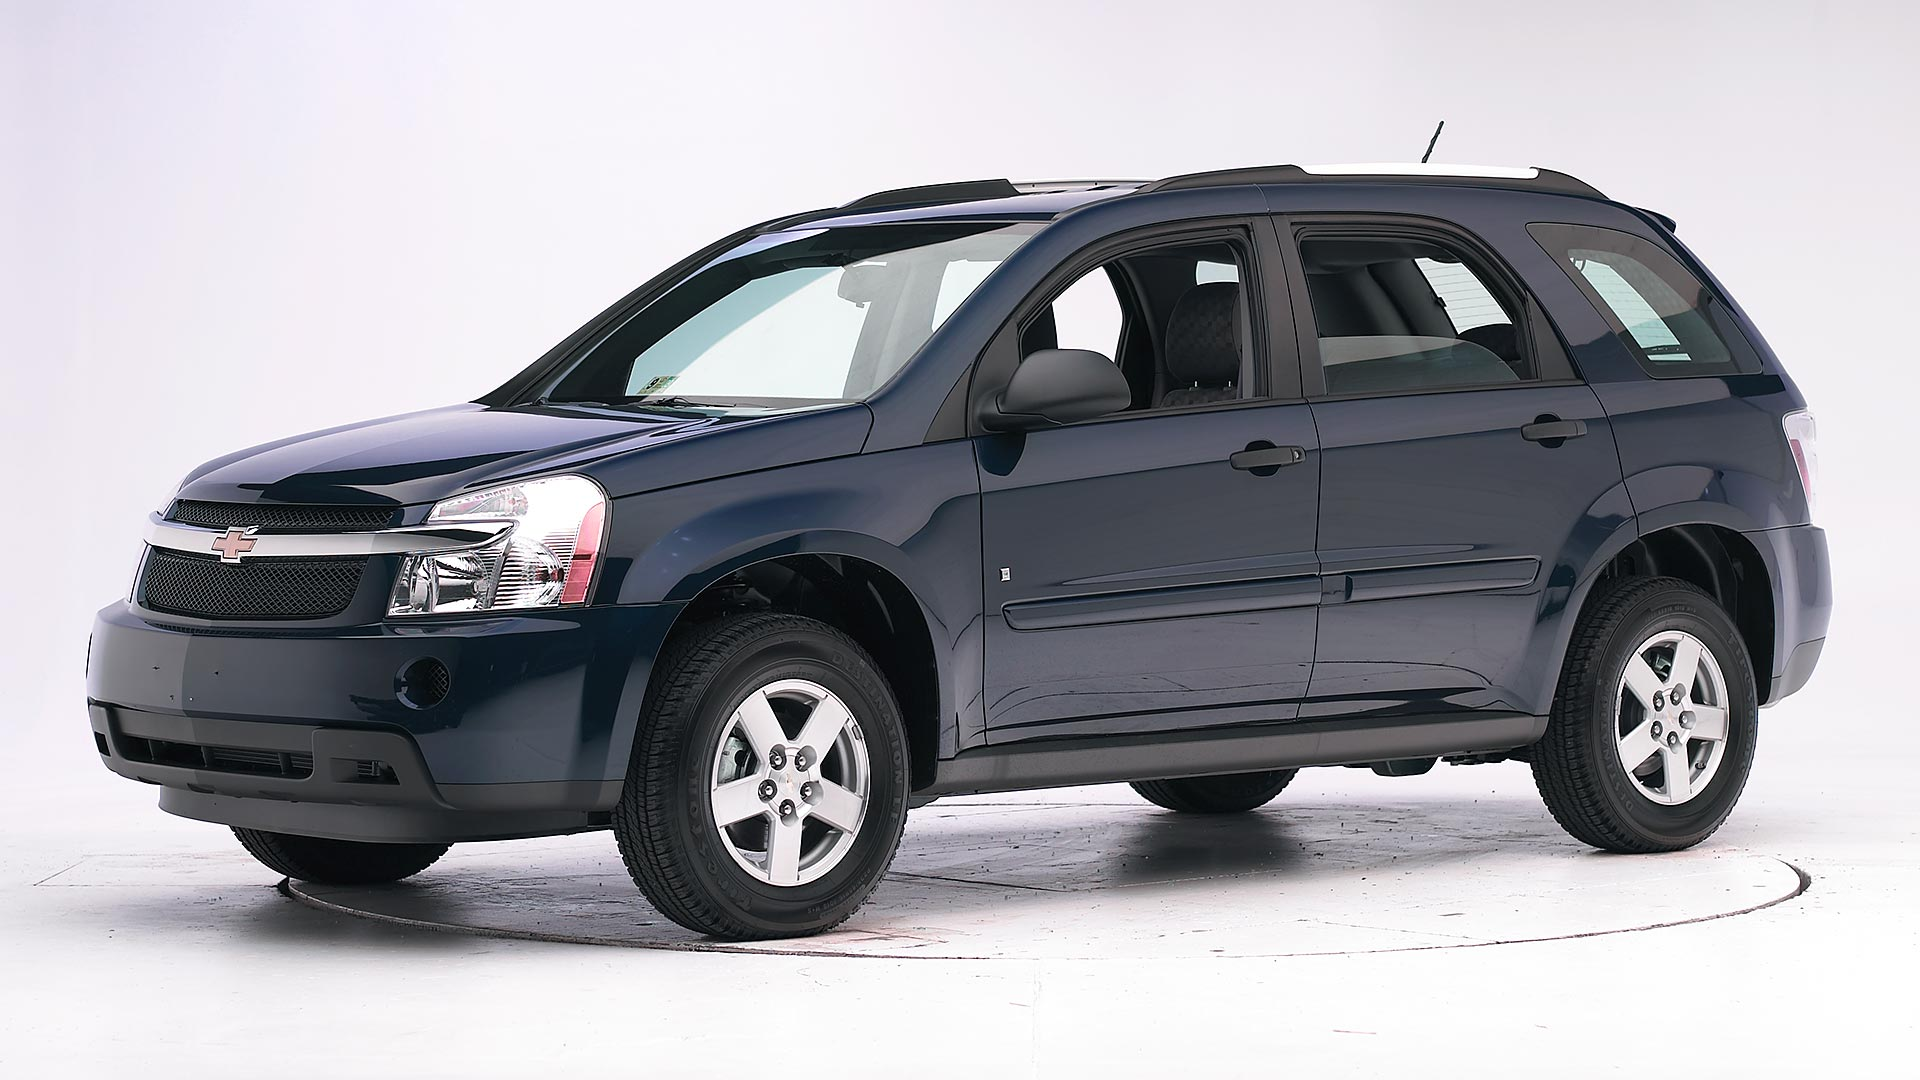 2009 Chevrolet Equinox 4-door SUV